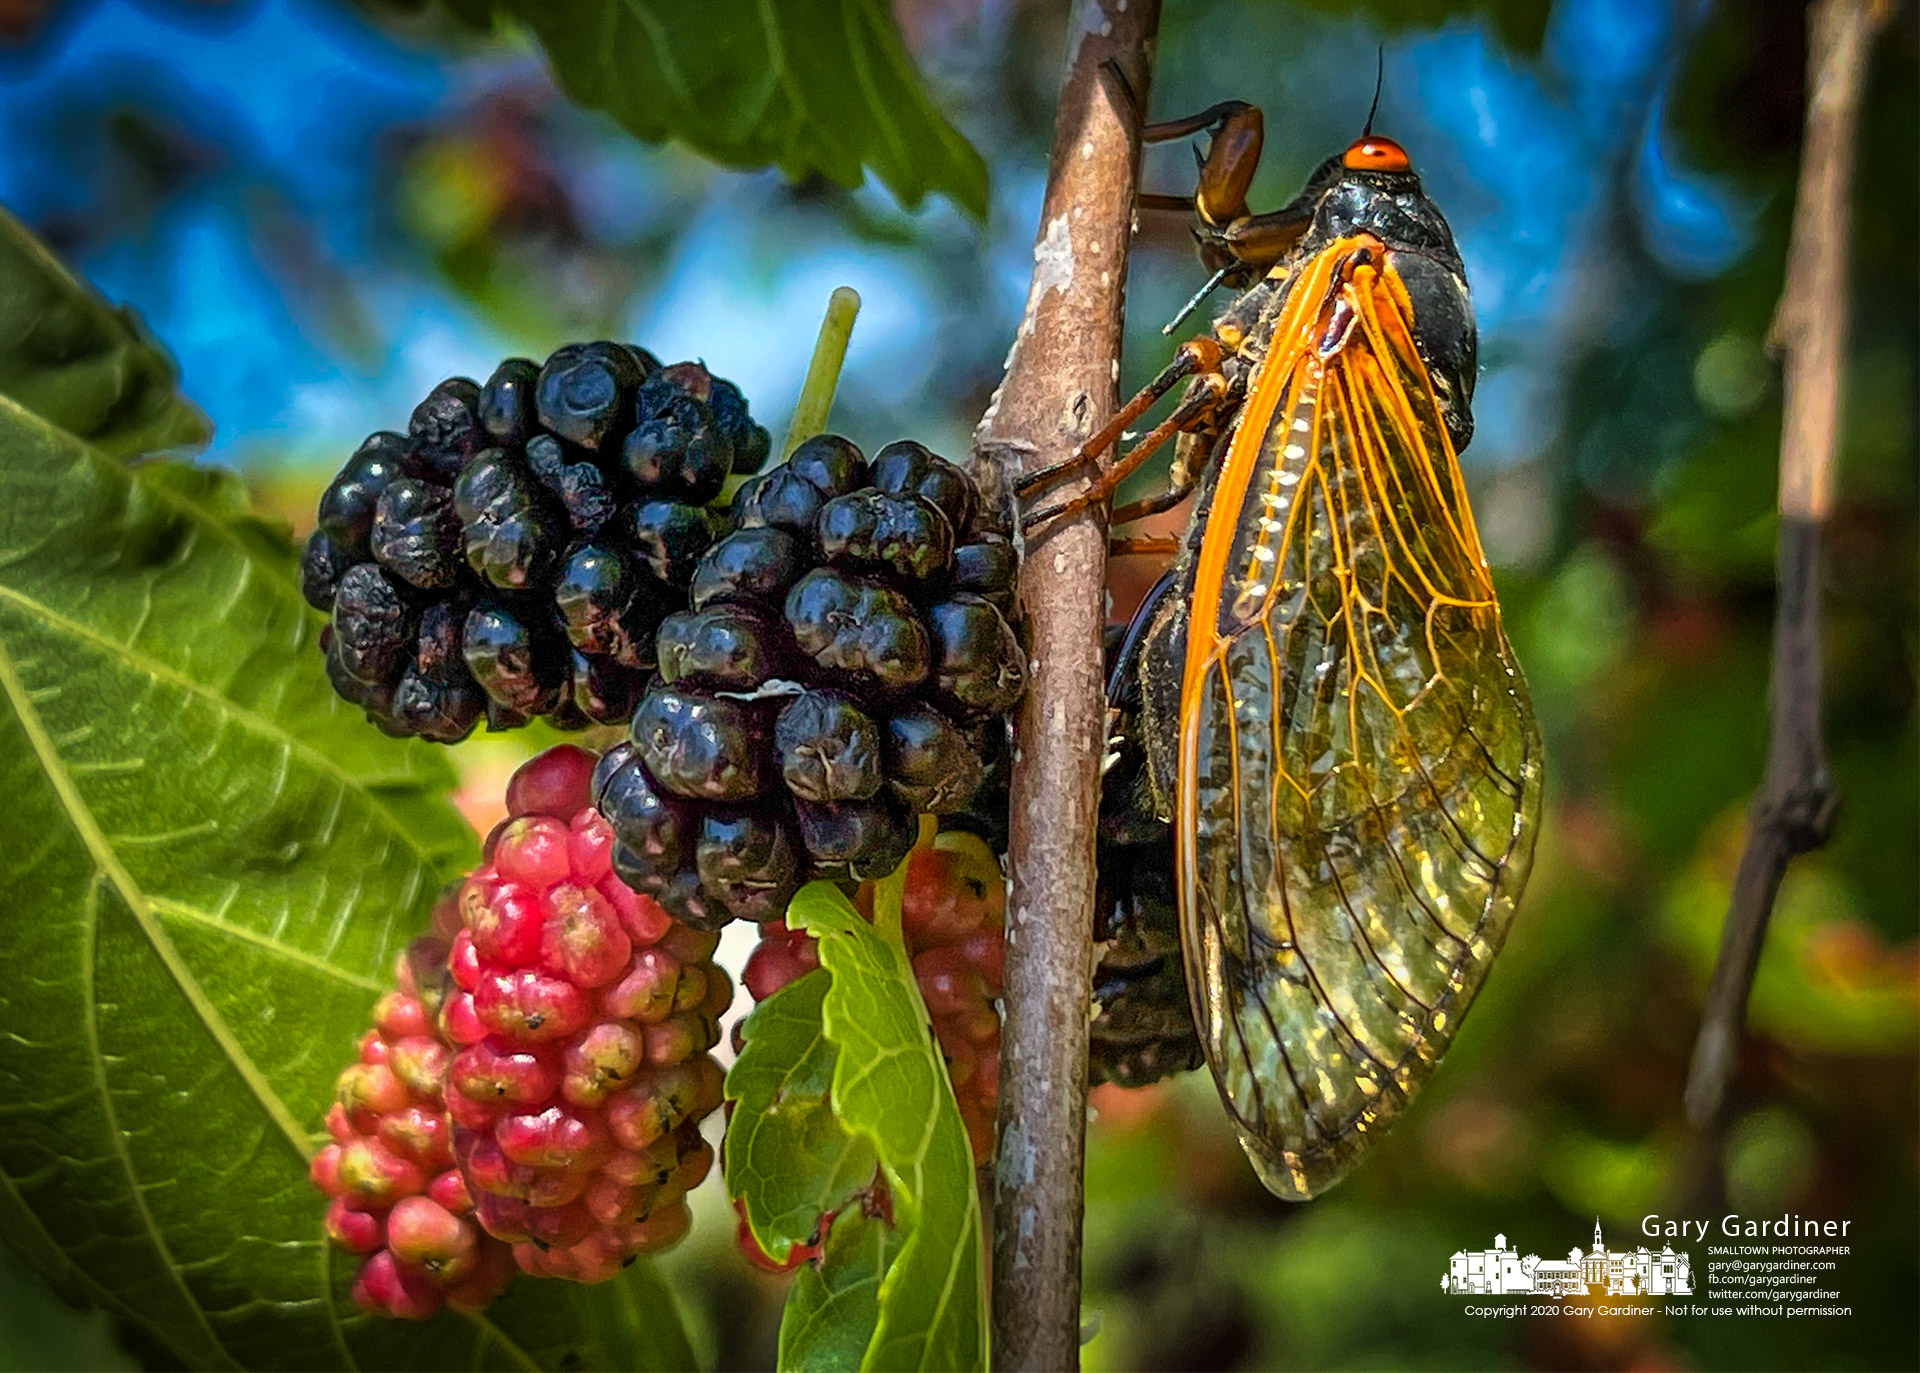 A cicada climbs along the limb of a mulberry tree with ripening fruit that is typically ignored by the insects during their ew weeks above ground. My Final Photo for June 16, 2021.